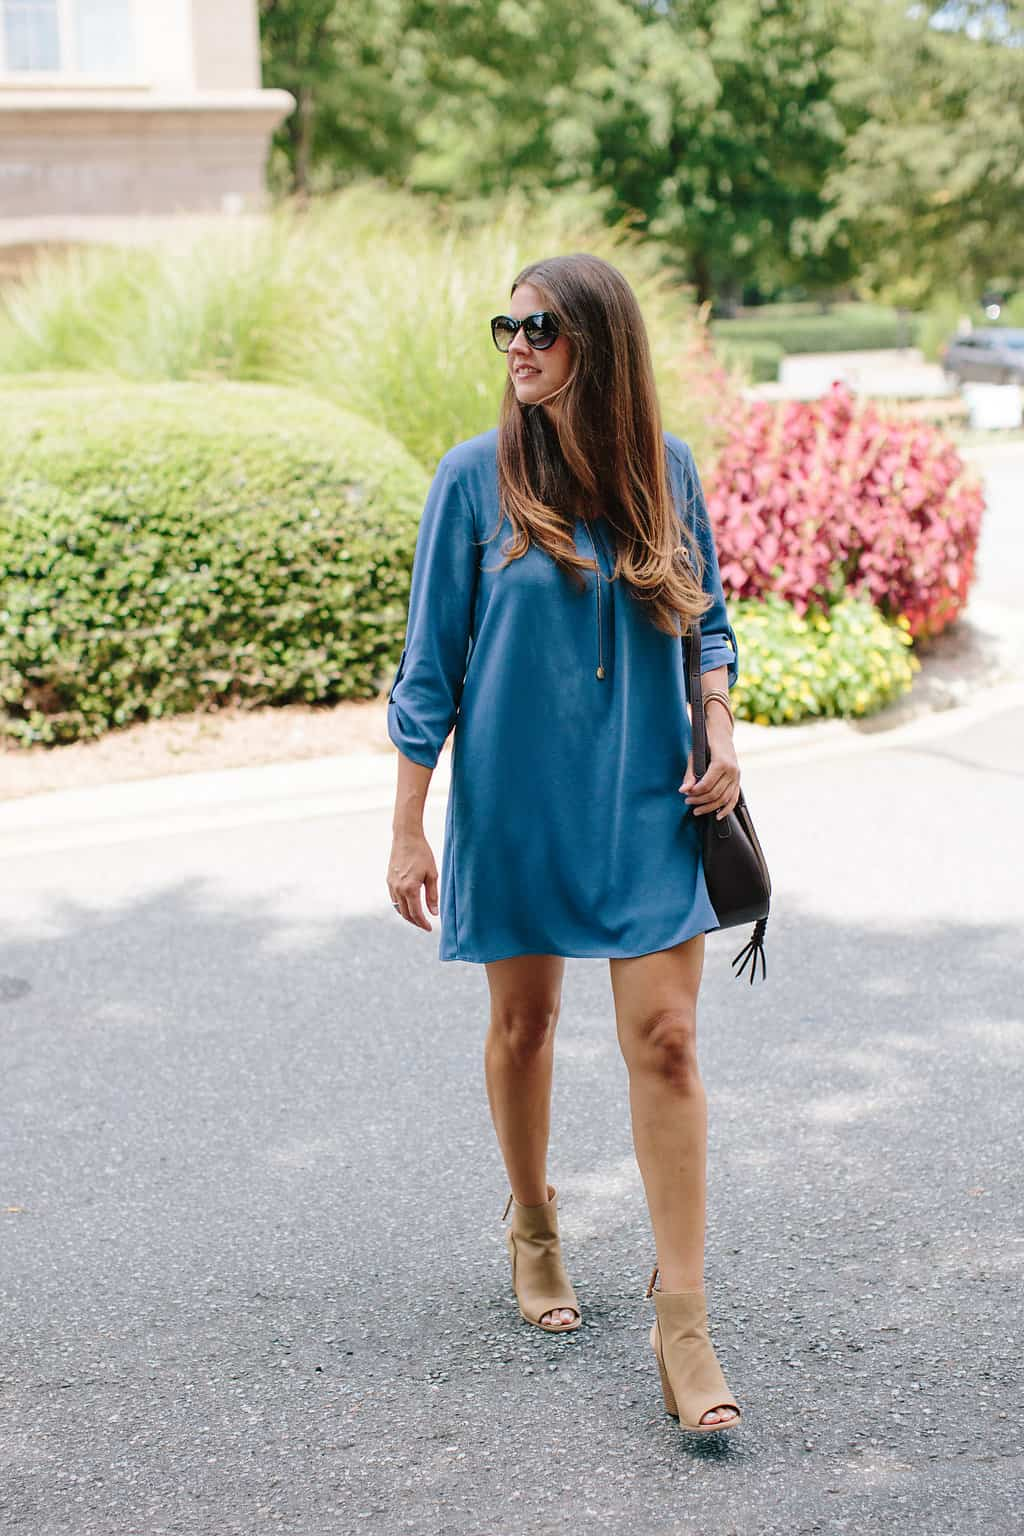 Simple-Shift-Dress-For-All-Occasions-long-hair